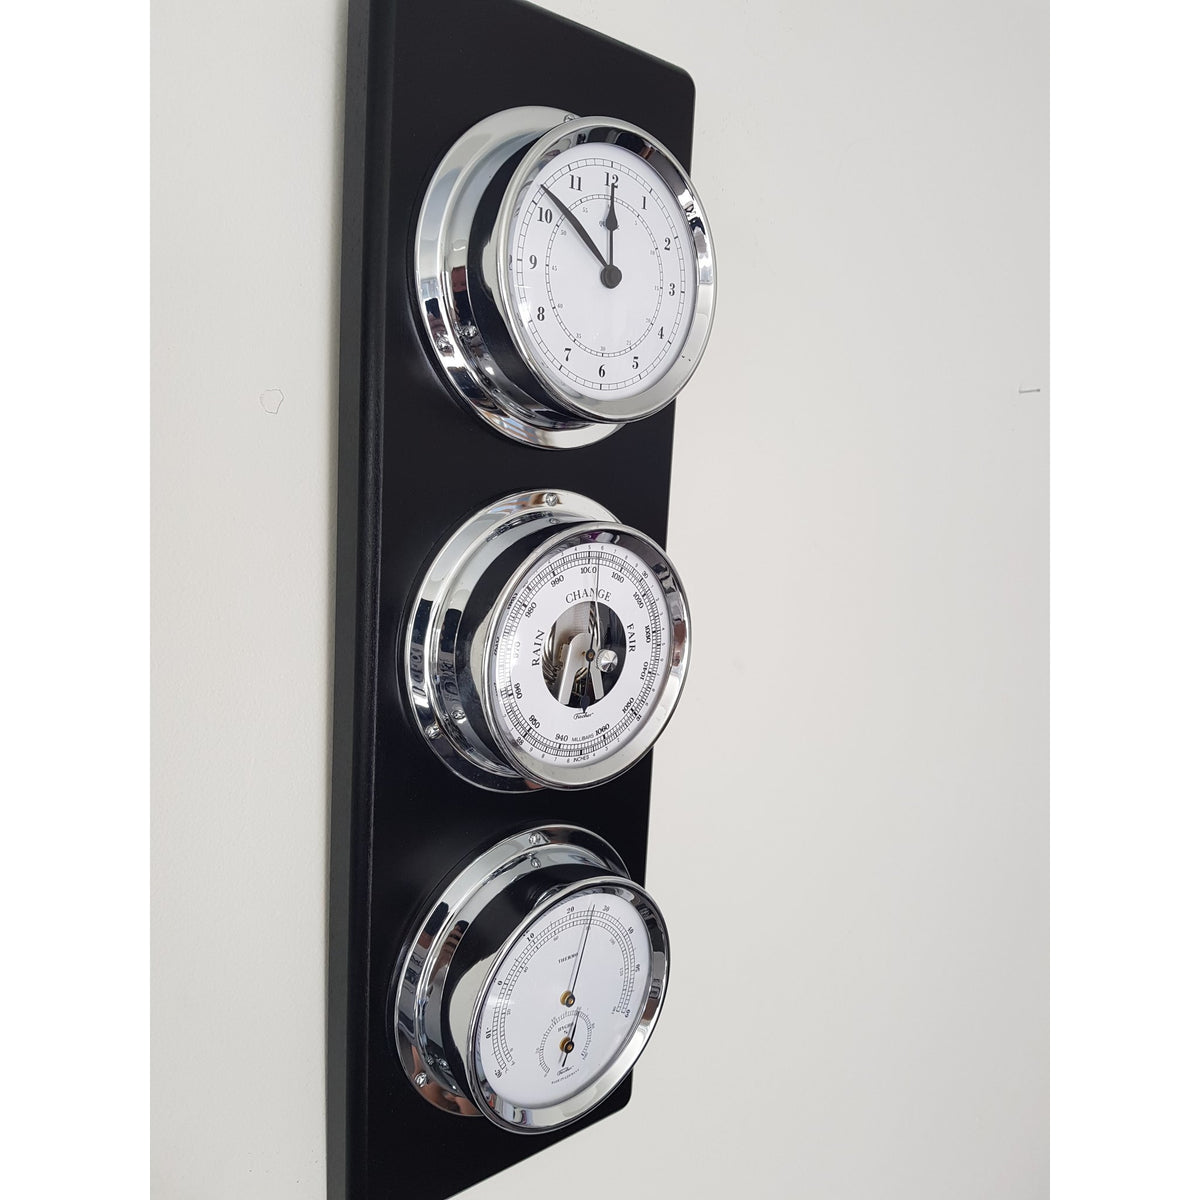 Stylish modern black & chrome Weather station